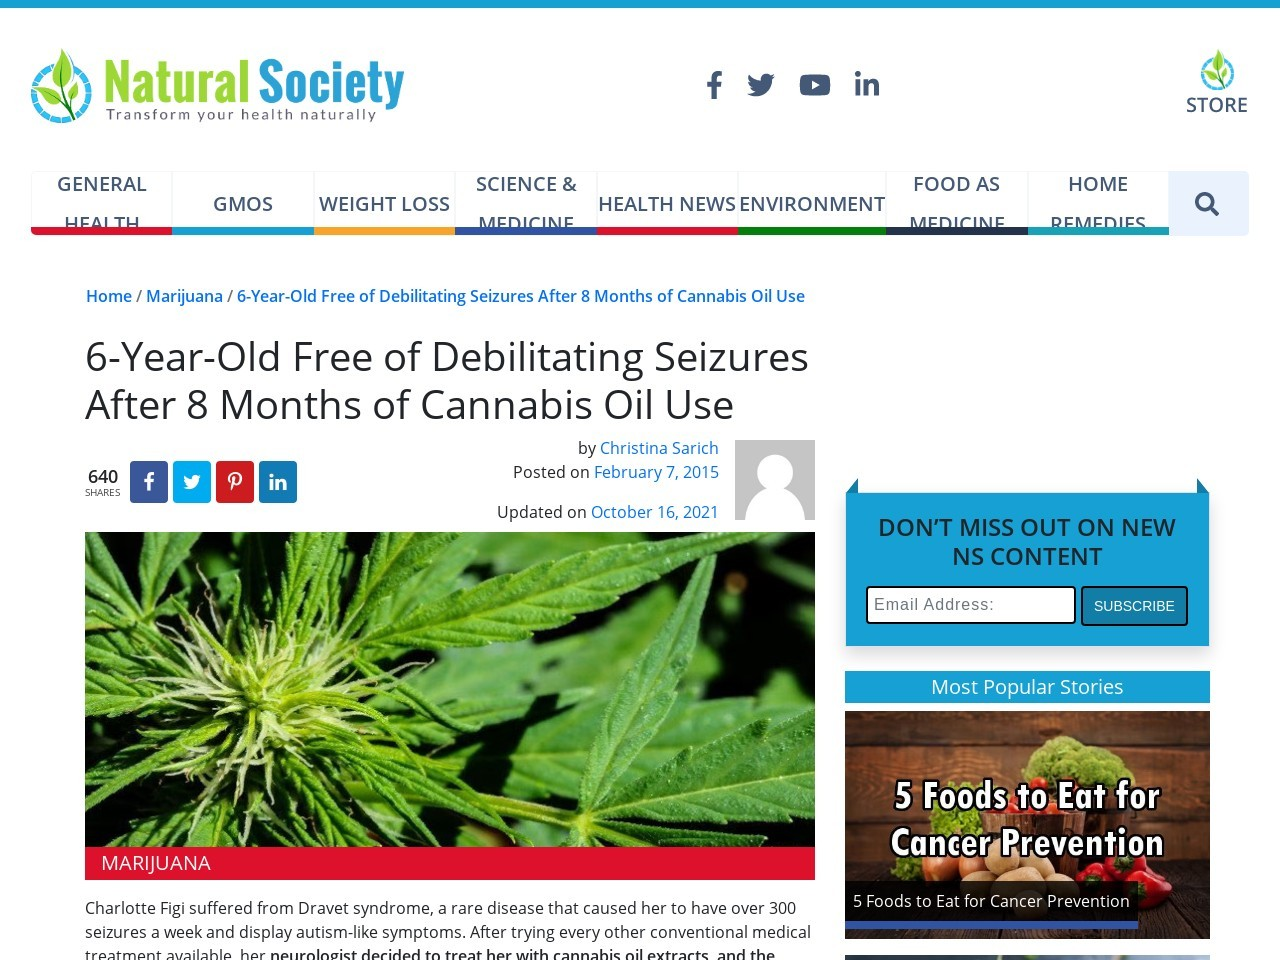 6-Year-Old Free of Debilitating Seizures After 8 Months of Cannabis Oil Use